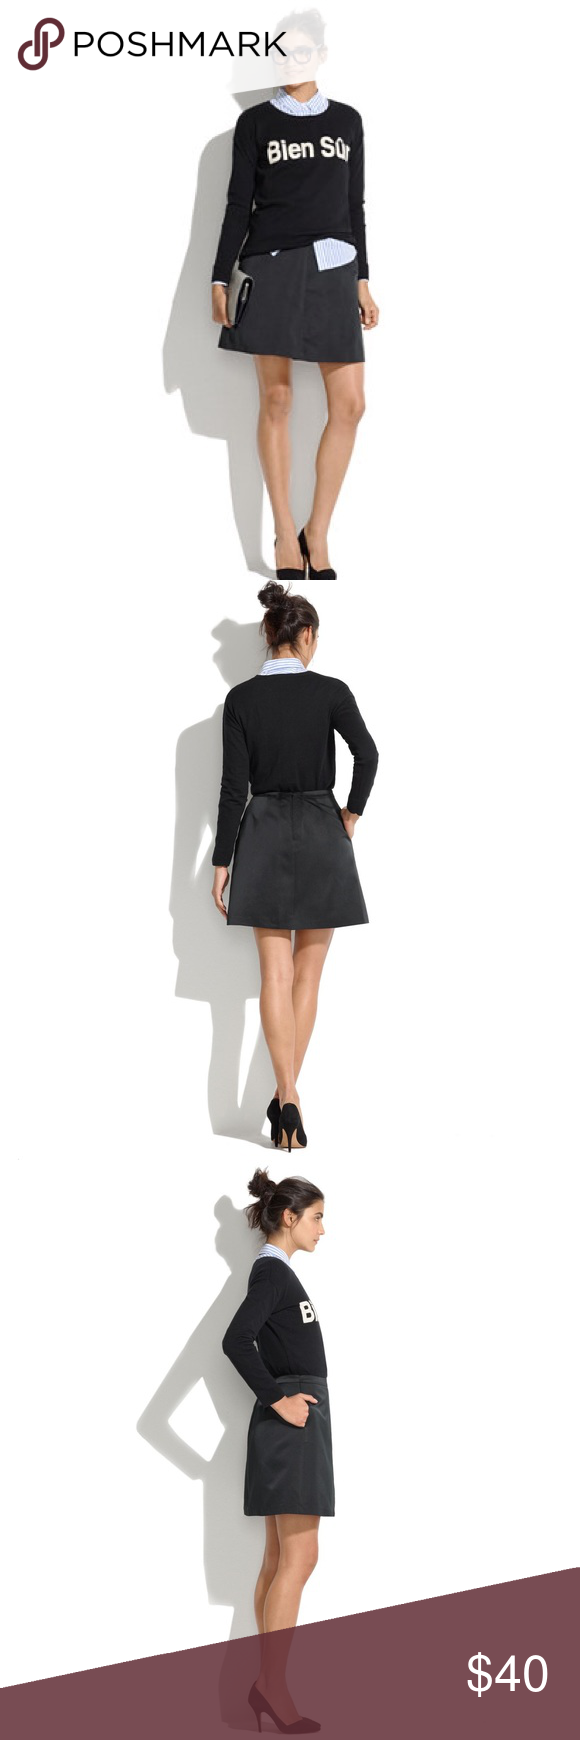 """NWOT Madewell Cocktail Skirt NWOT from Madewell. """"A sculptural silhouette plus a not-too-shiny satin make this a party season go-to. We like it with a half-tucked slub tee. •Full mini. •17 1/2"""" long. •Poly. •Dry clean. •Note that this style does not have pockets as shown. •Import."""" Madewell Skirts Mini"""